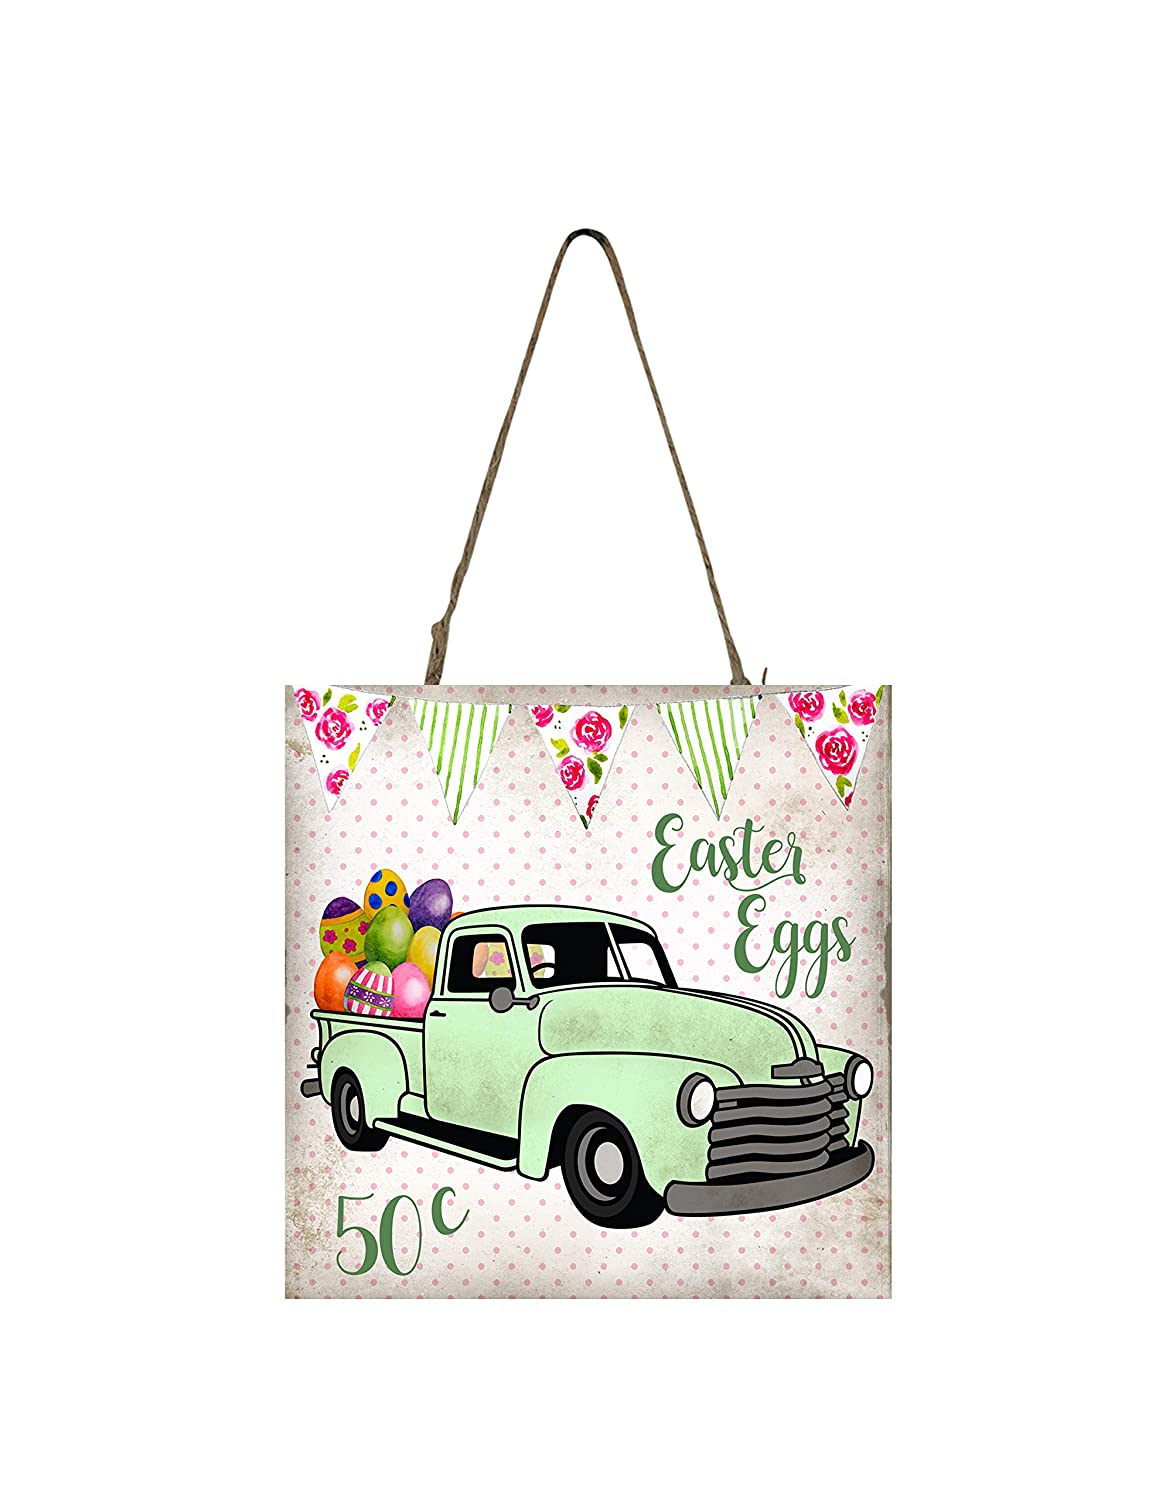 Green Easter Egg Truck Printed Handmade Wood Ornament Small Sign